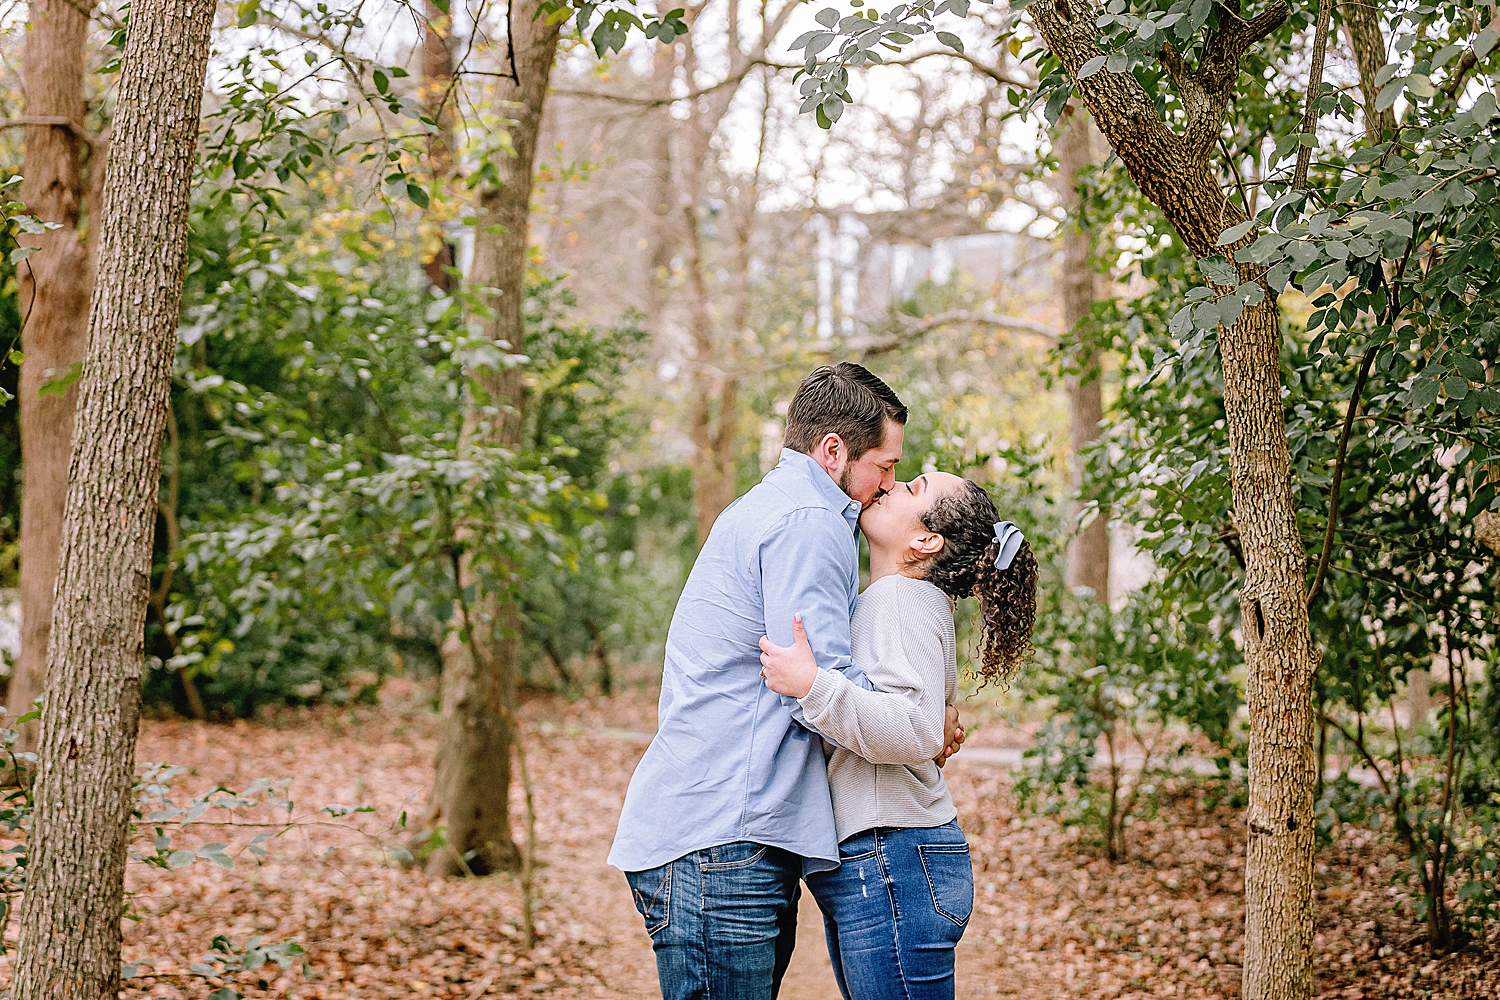 Engagement-photo-session-gruene-new-braunfels-texas-carly-barton-photography_0015.jpg